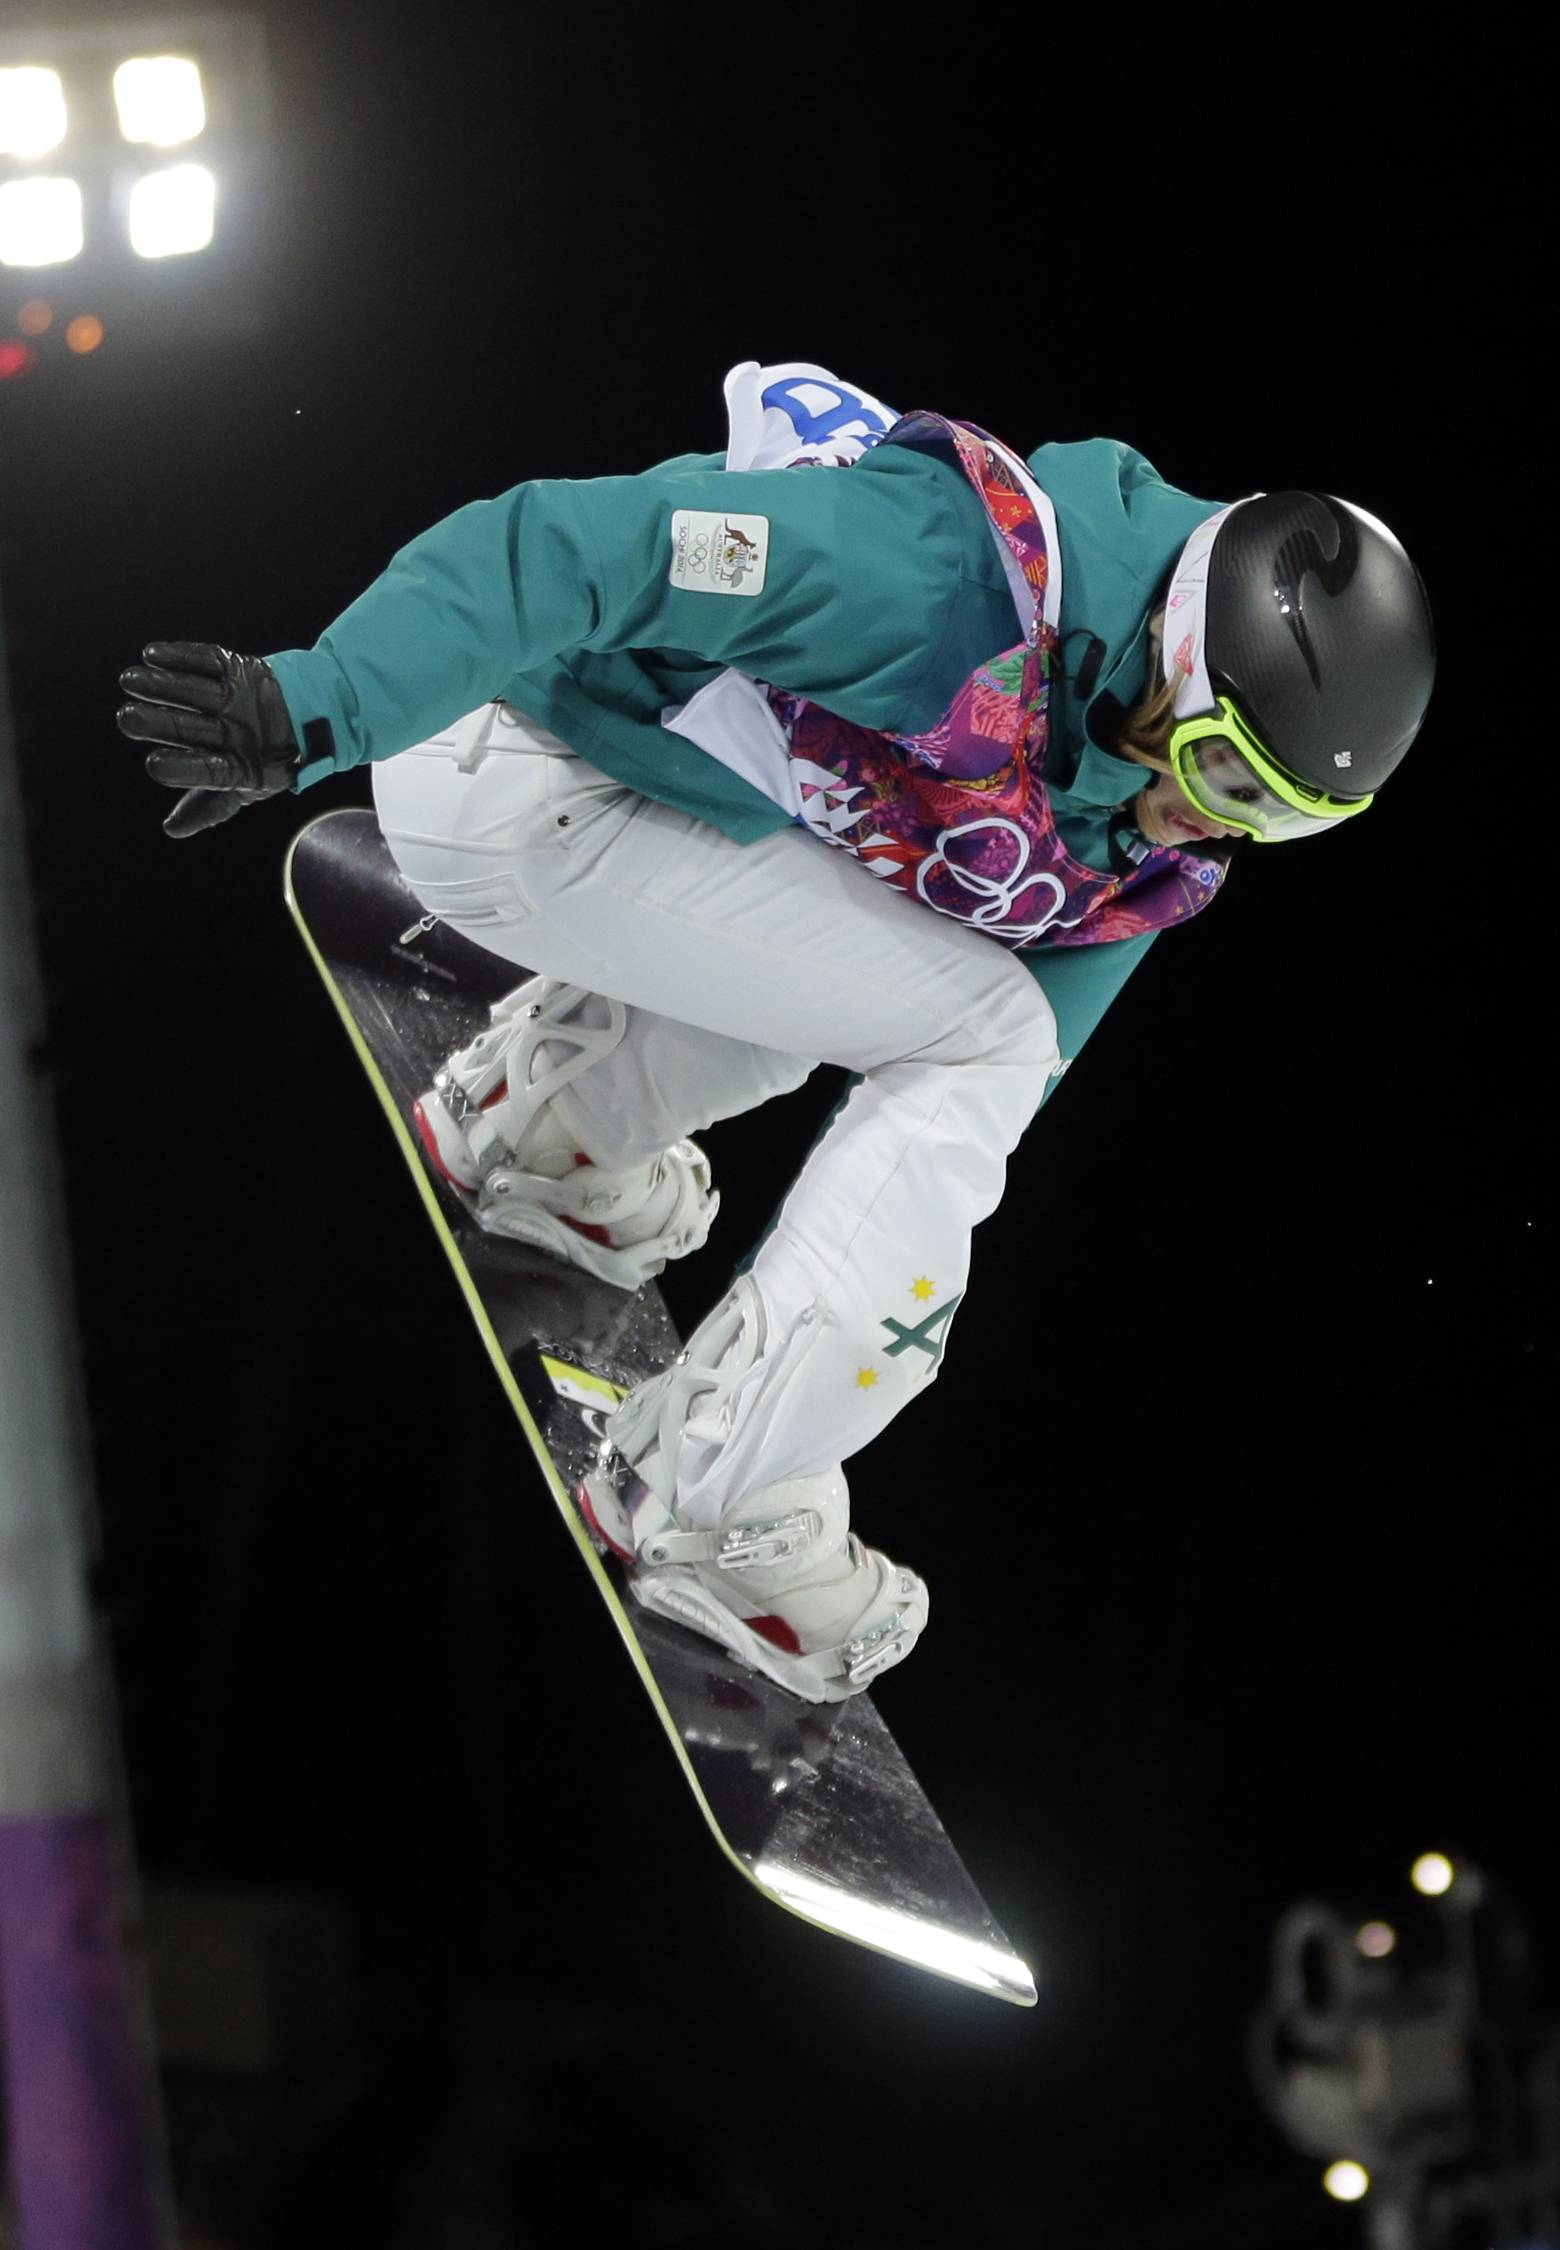 Australia's Torah Bright competes to win the silver medal in the women's snowboard halfpipe.